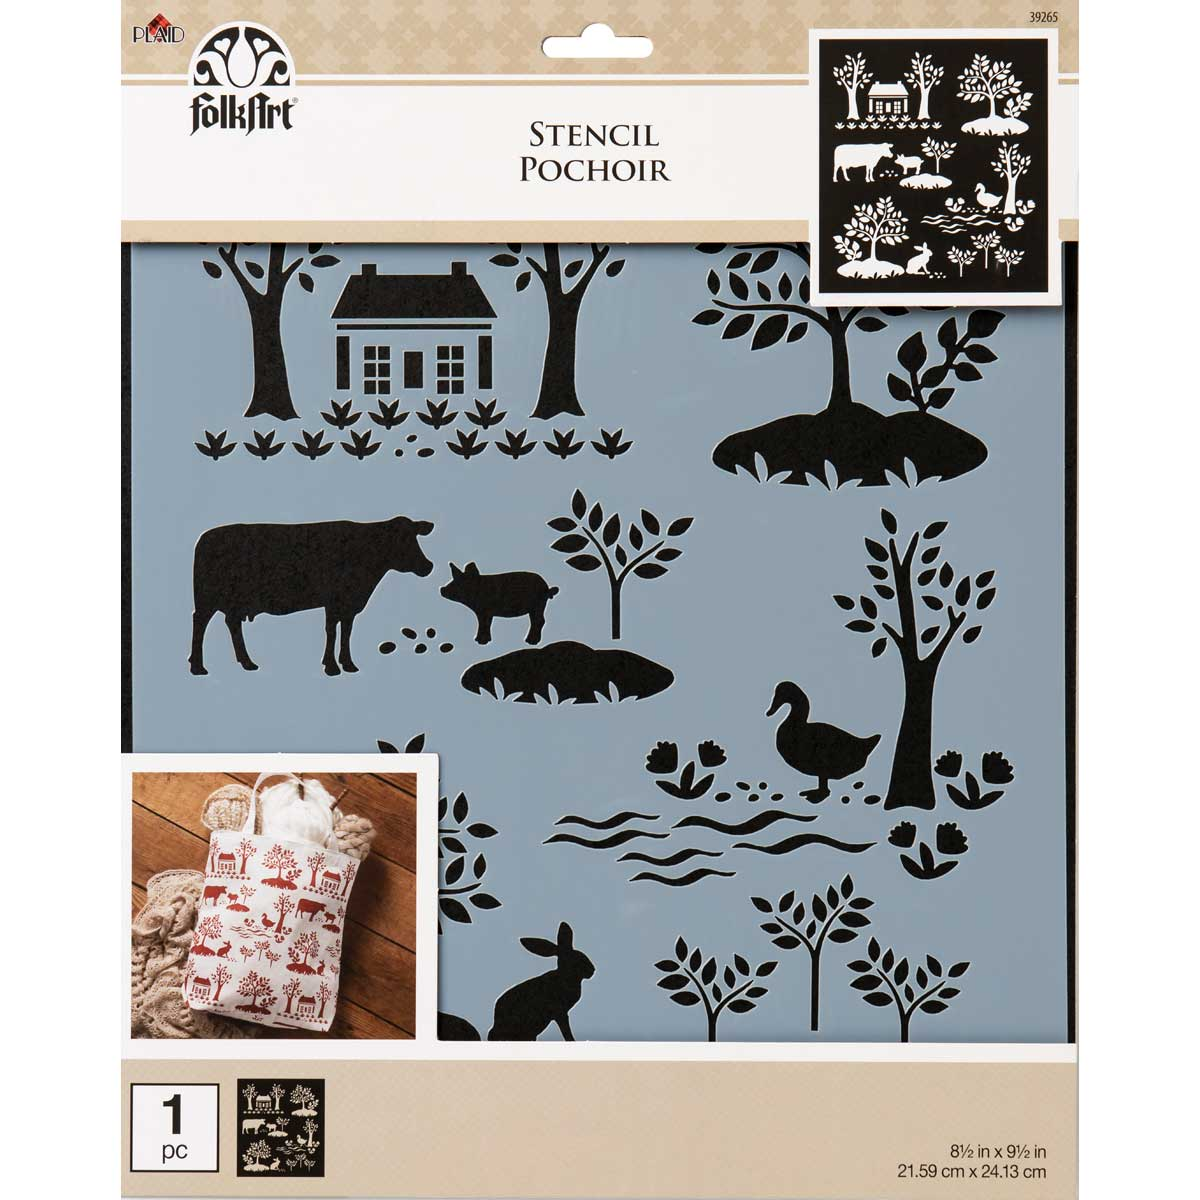 FolkArt ® Painting Stencils - Large - Modern Toile - 39265